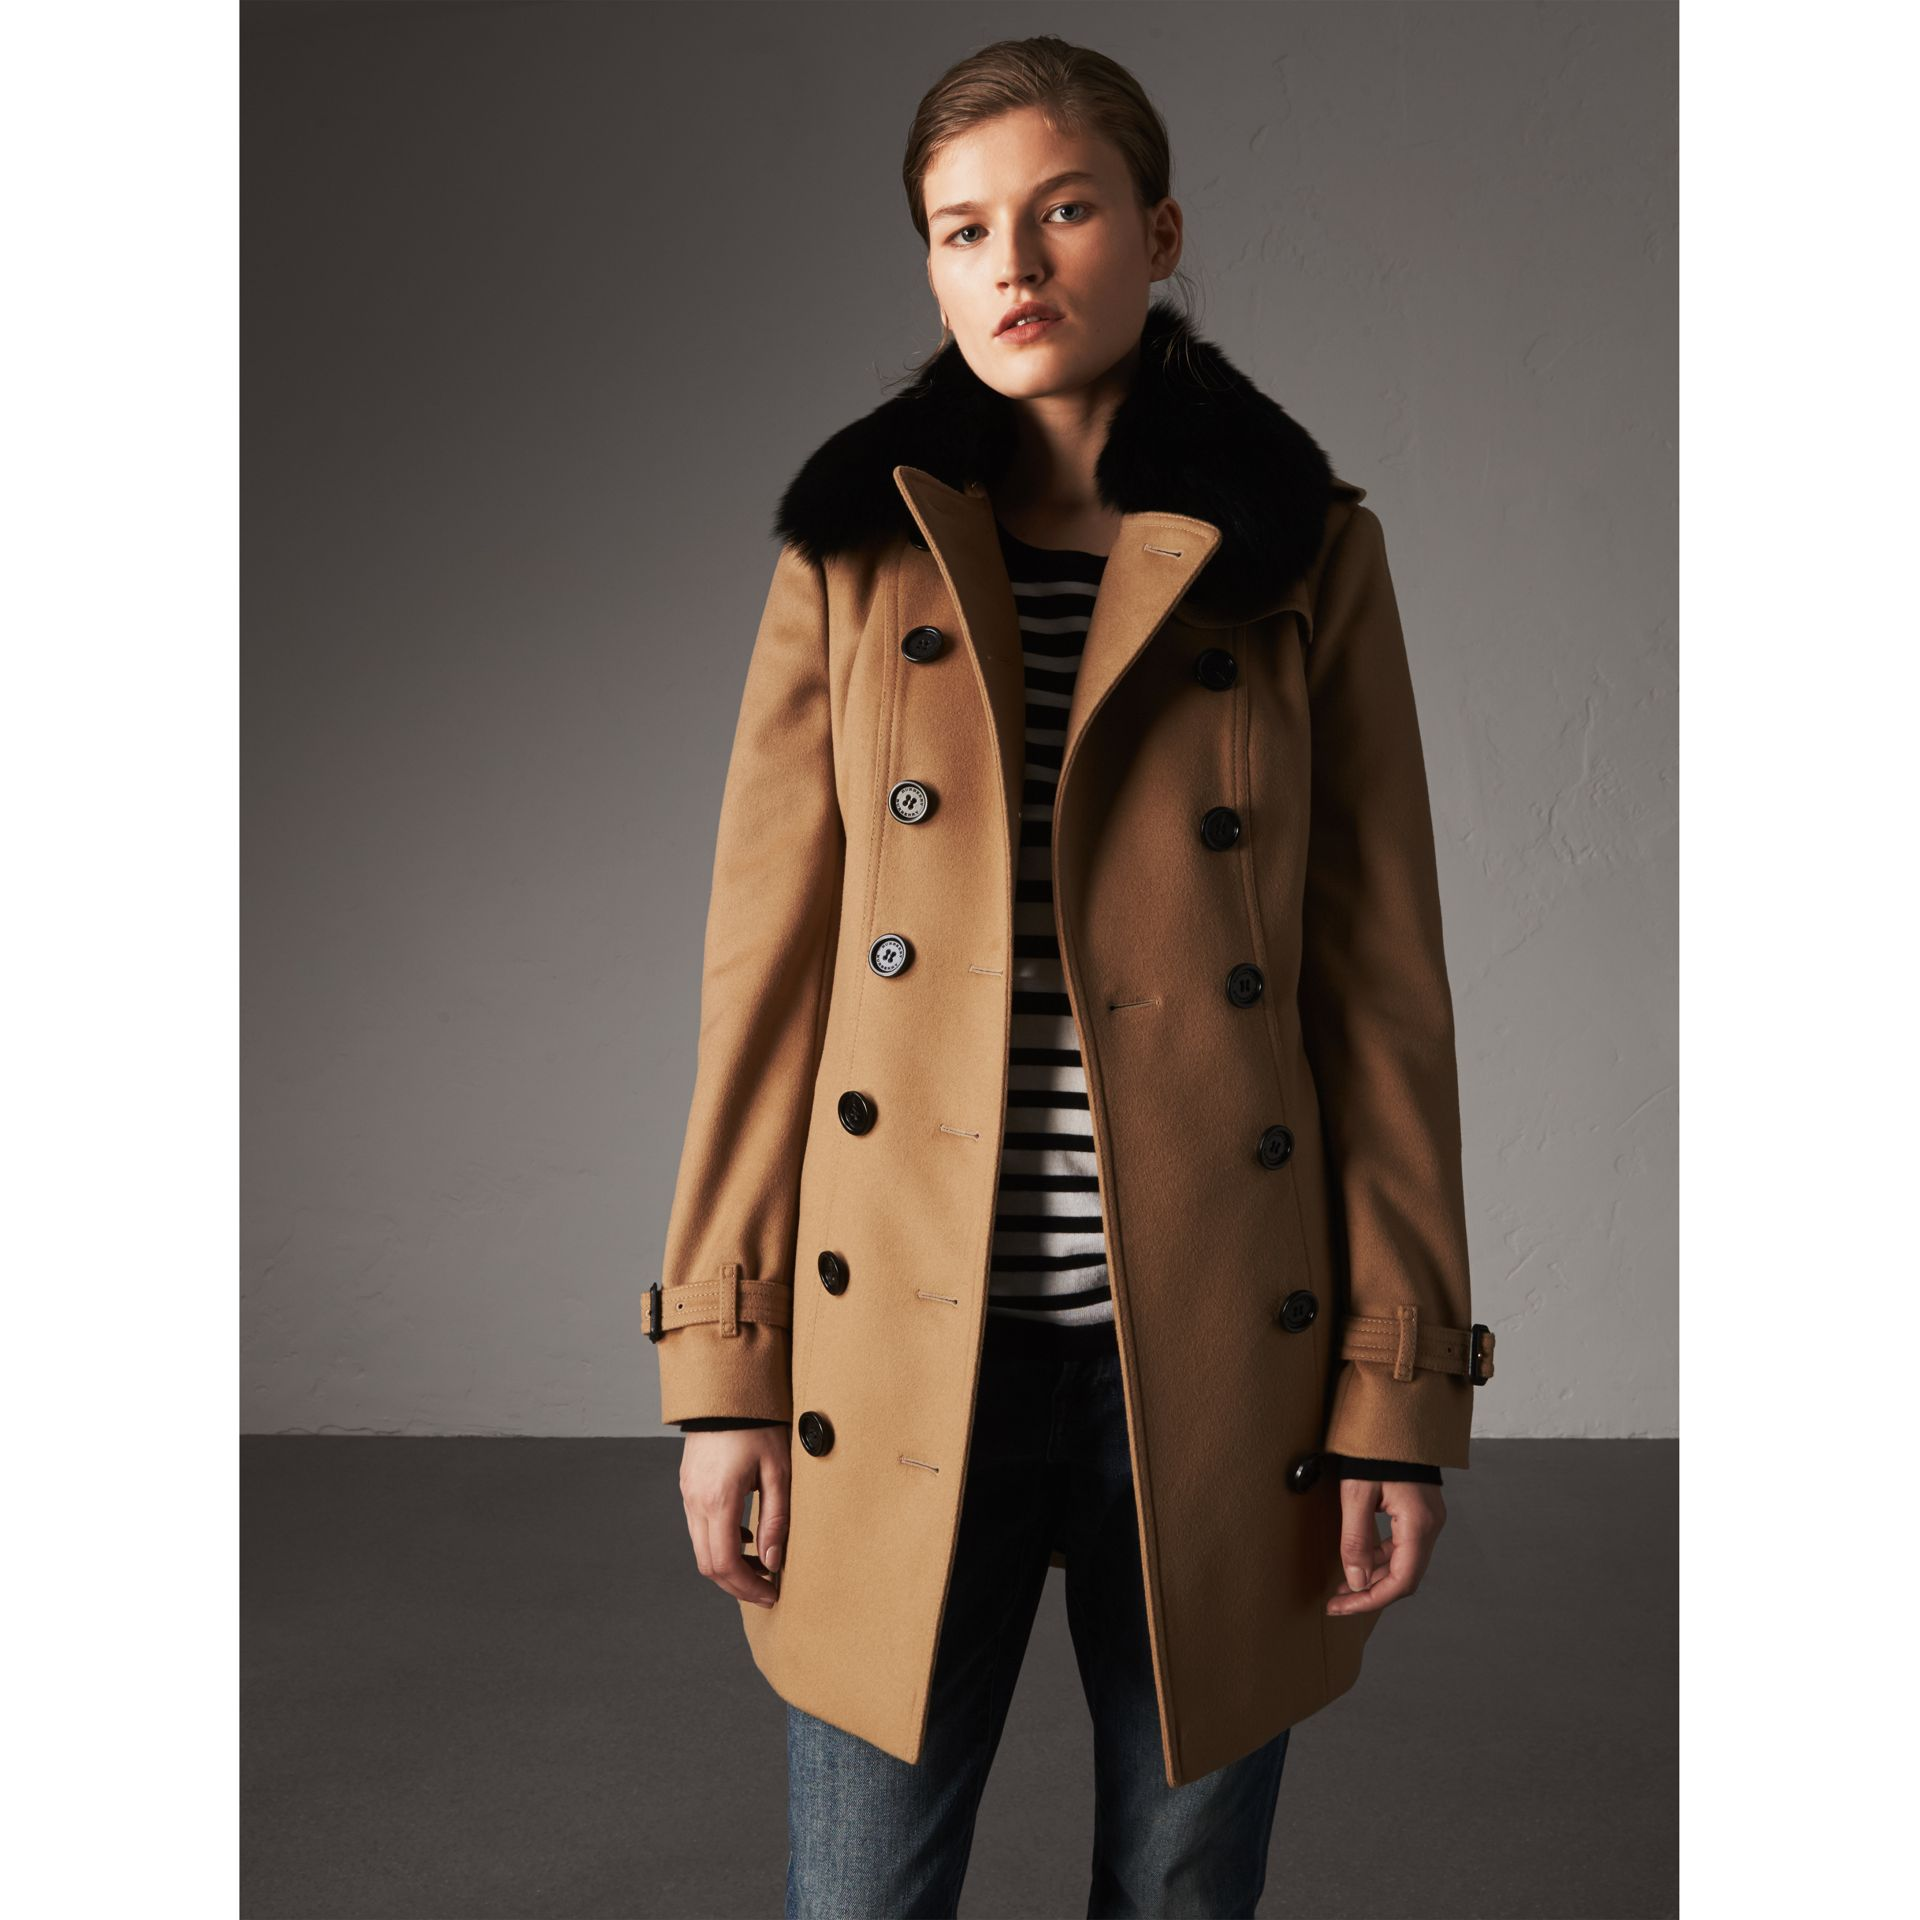 Wool Cashmere Trench Coat with Fur Collar in Camel - Women | Burberry - gallery image 0